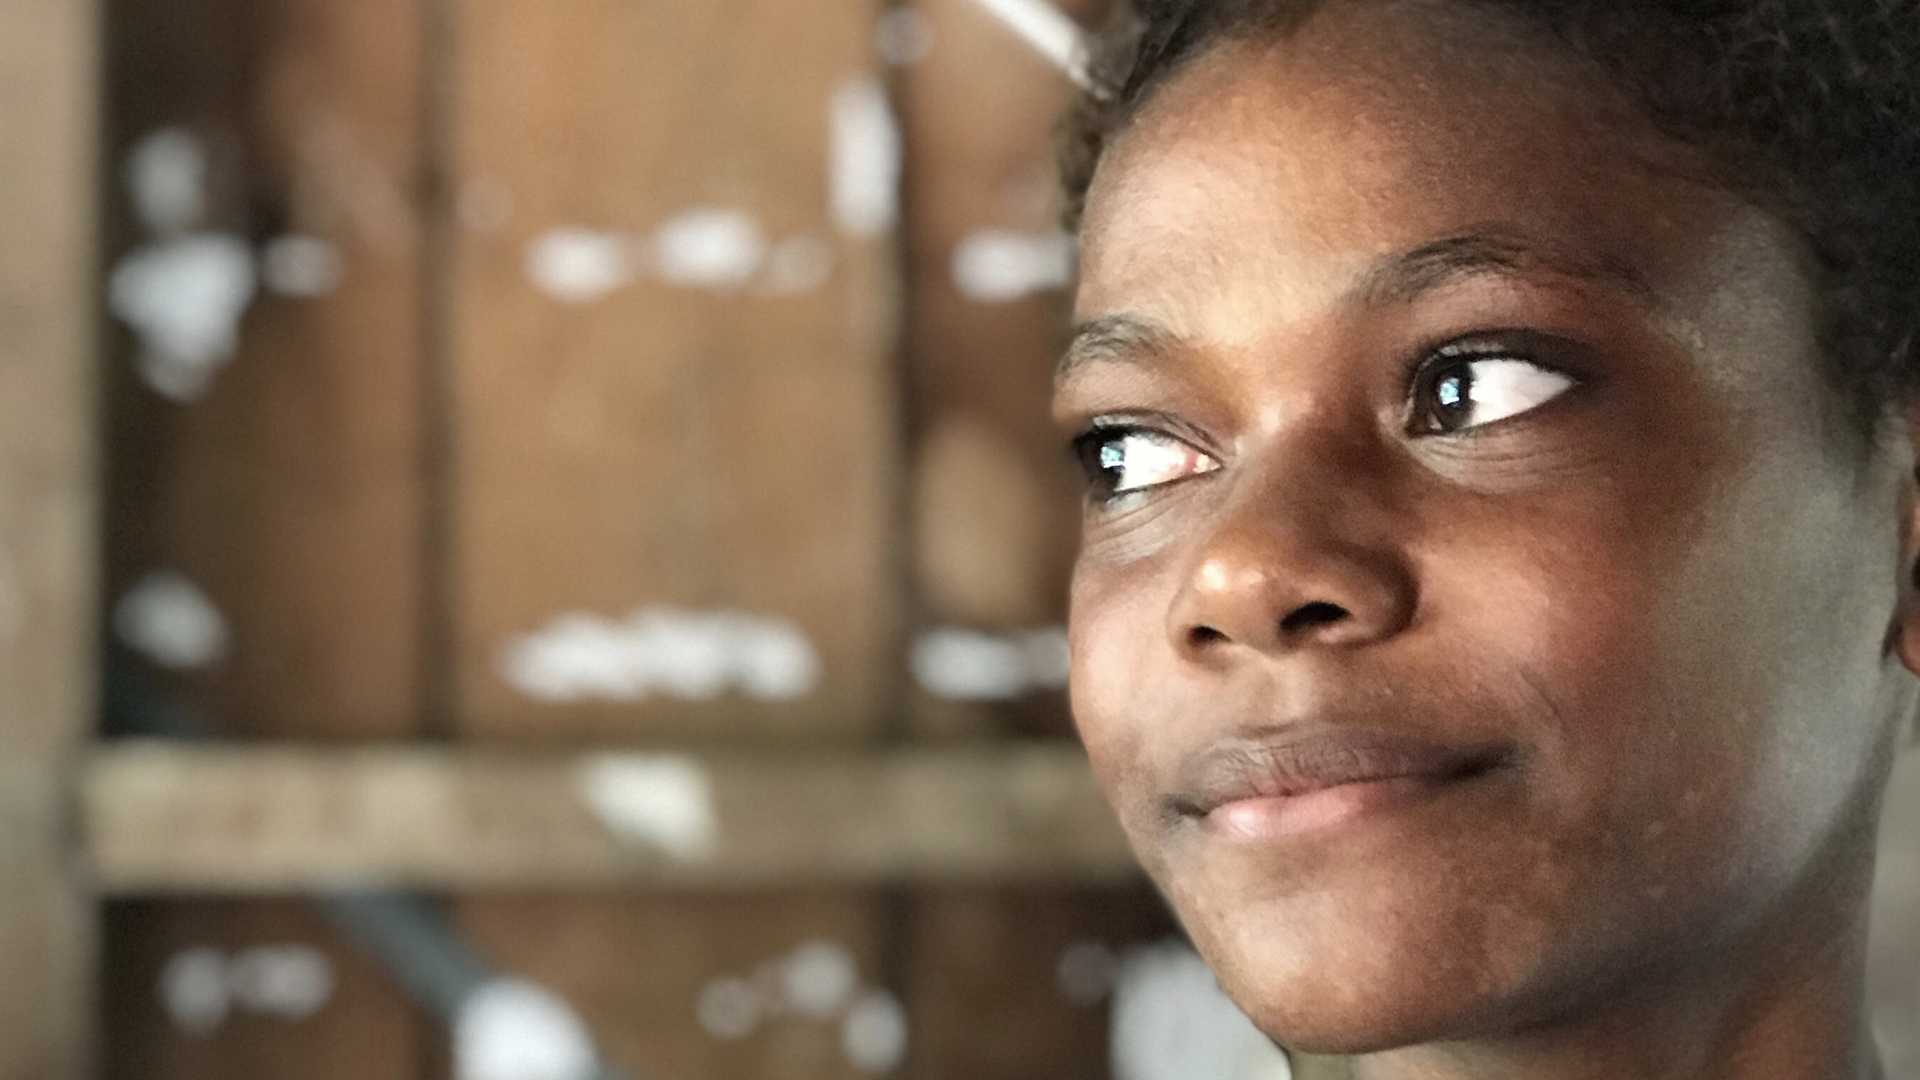 Cathy is from the island of Santa Catalina in Makira province. The low laying atoll is rapidly eroding as a result of sea level rise and the community is facing hard choices trying to feed a growing population with reduced arable land.